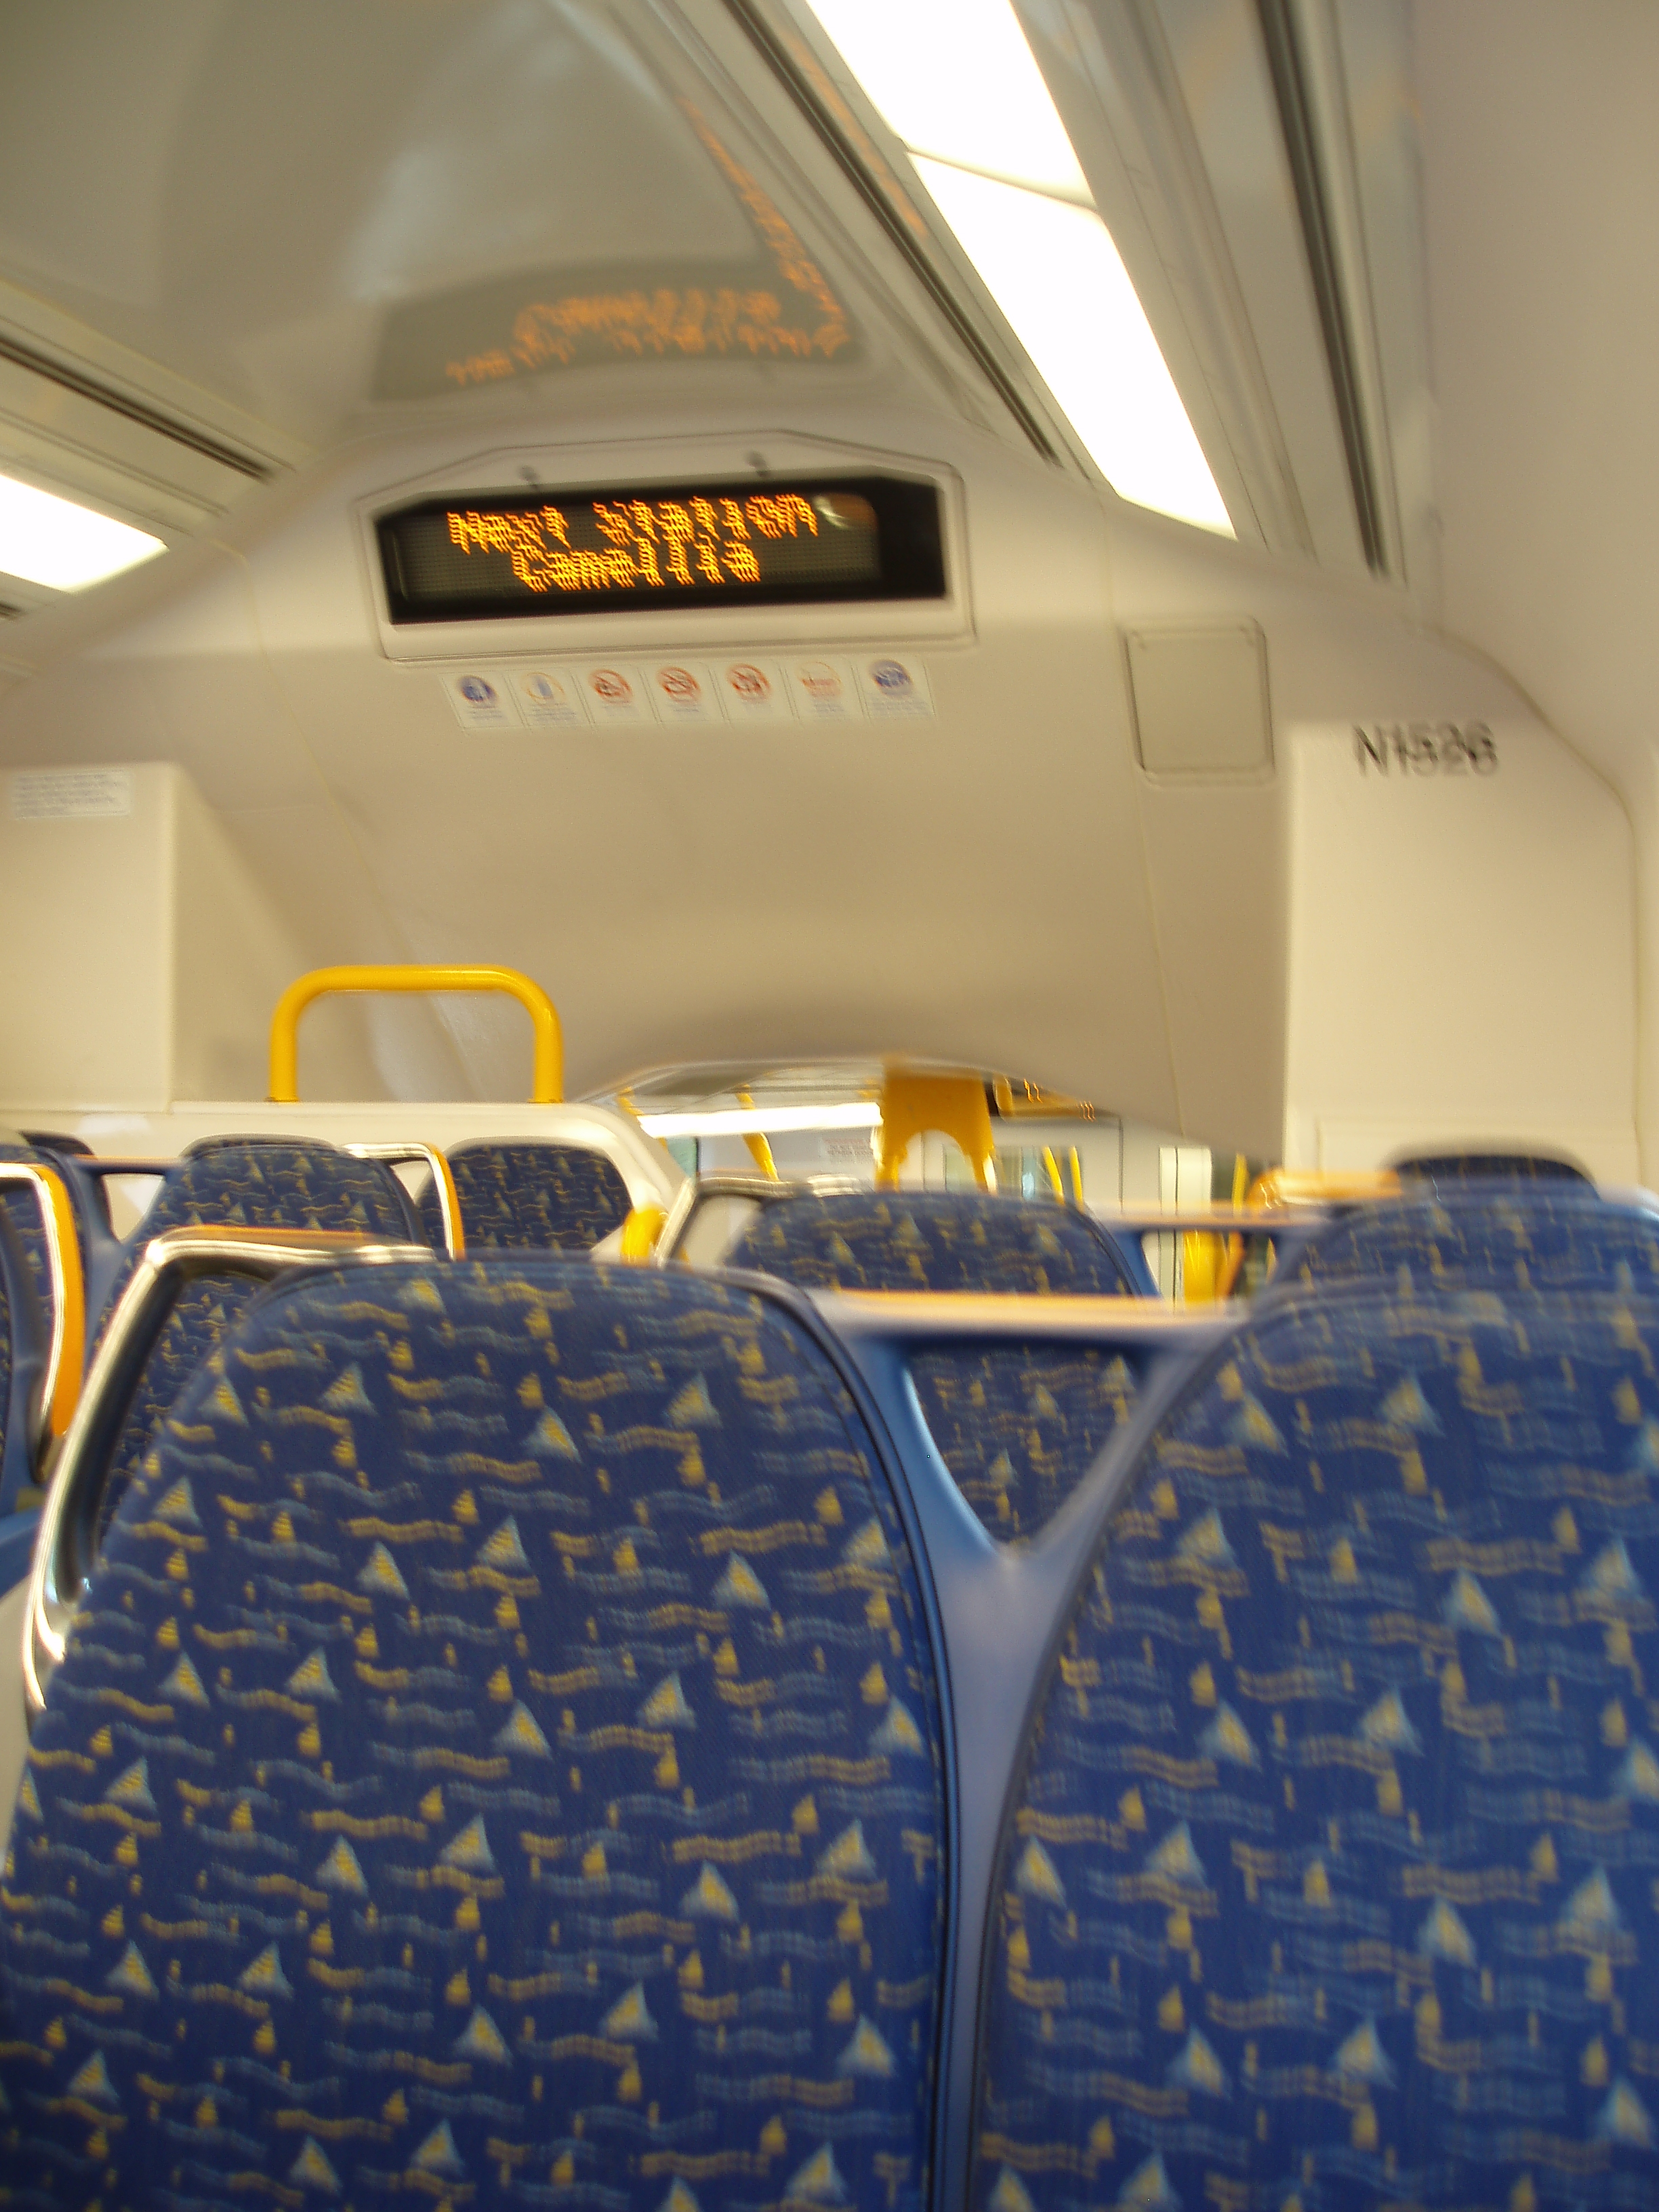 blurred interior of a rail car